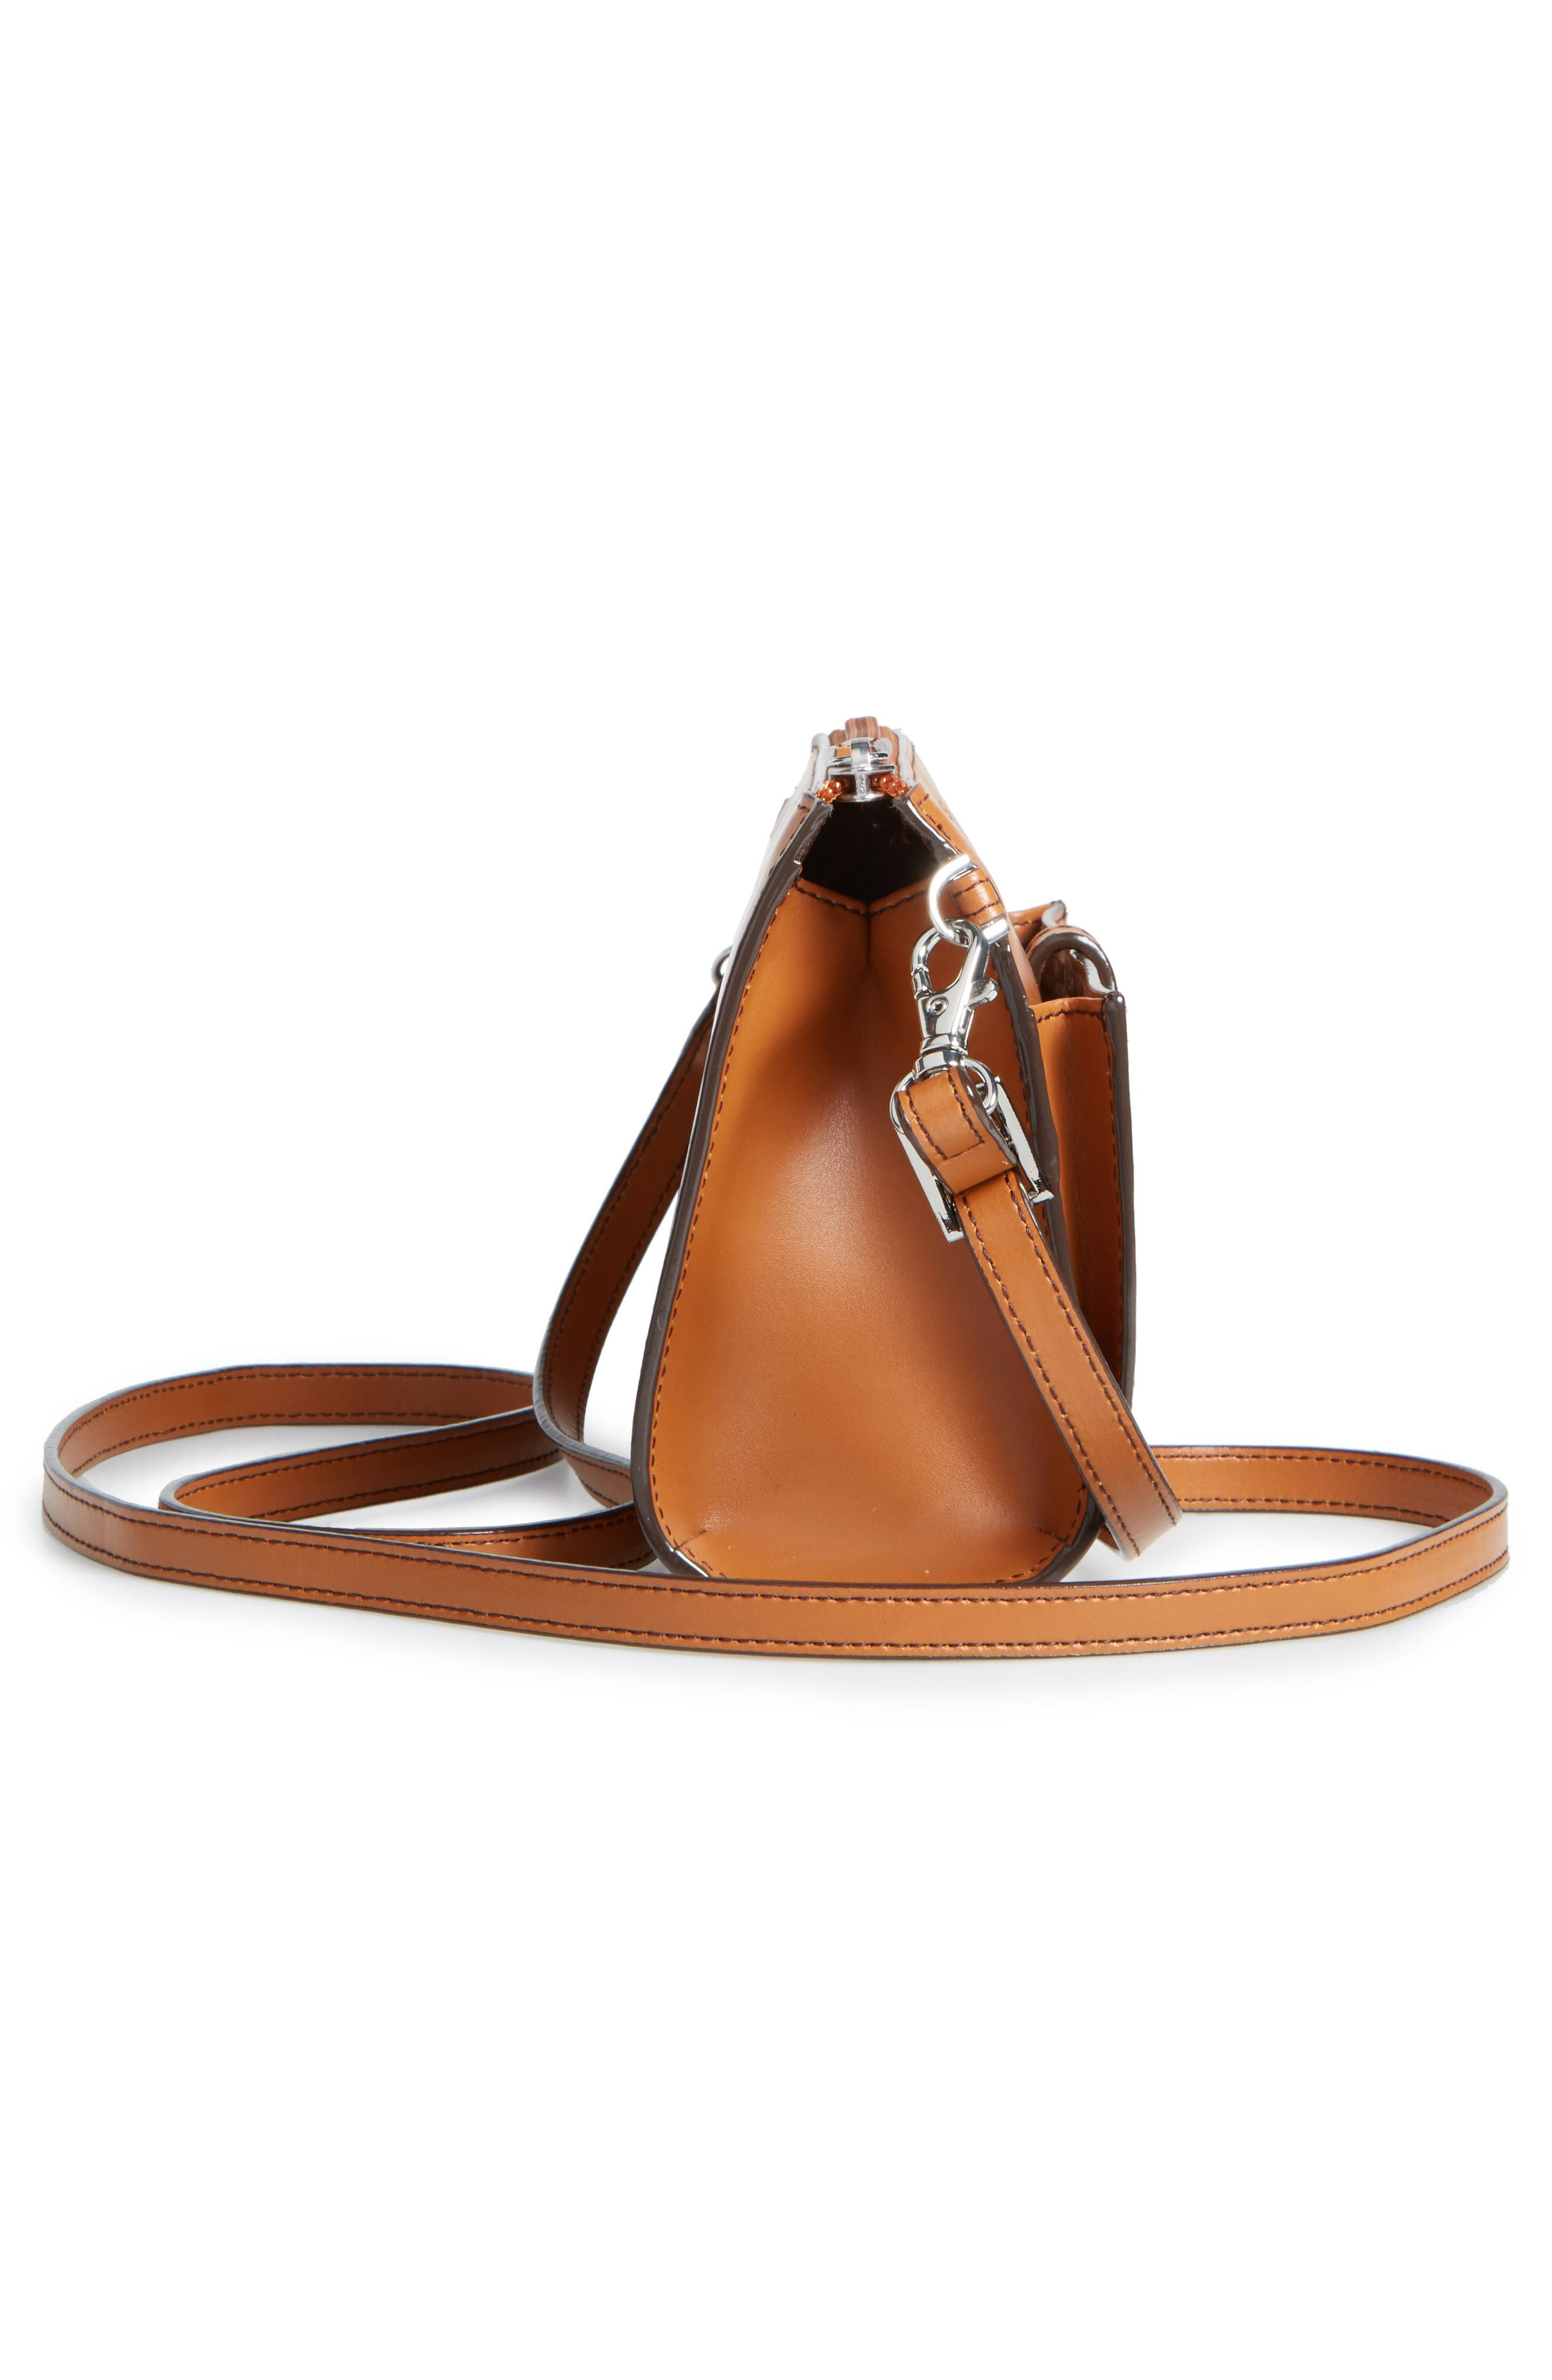 Audrey Under Lock & Key Vicky Convertible Leather Crossbody Bag,                             Alternate thumbnail 5, color,                             TOFFEE